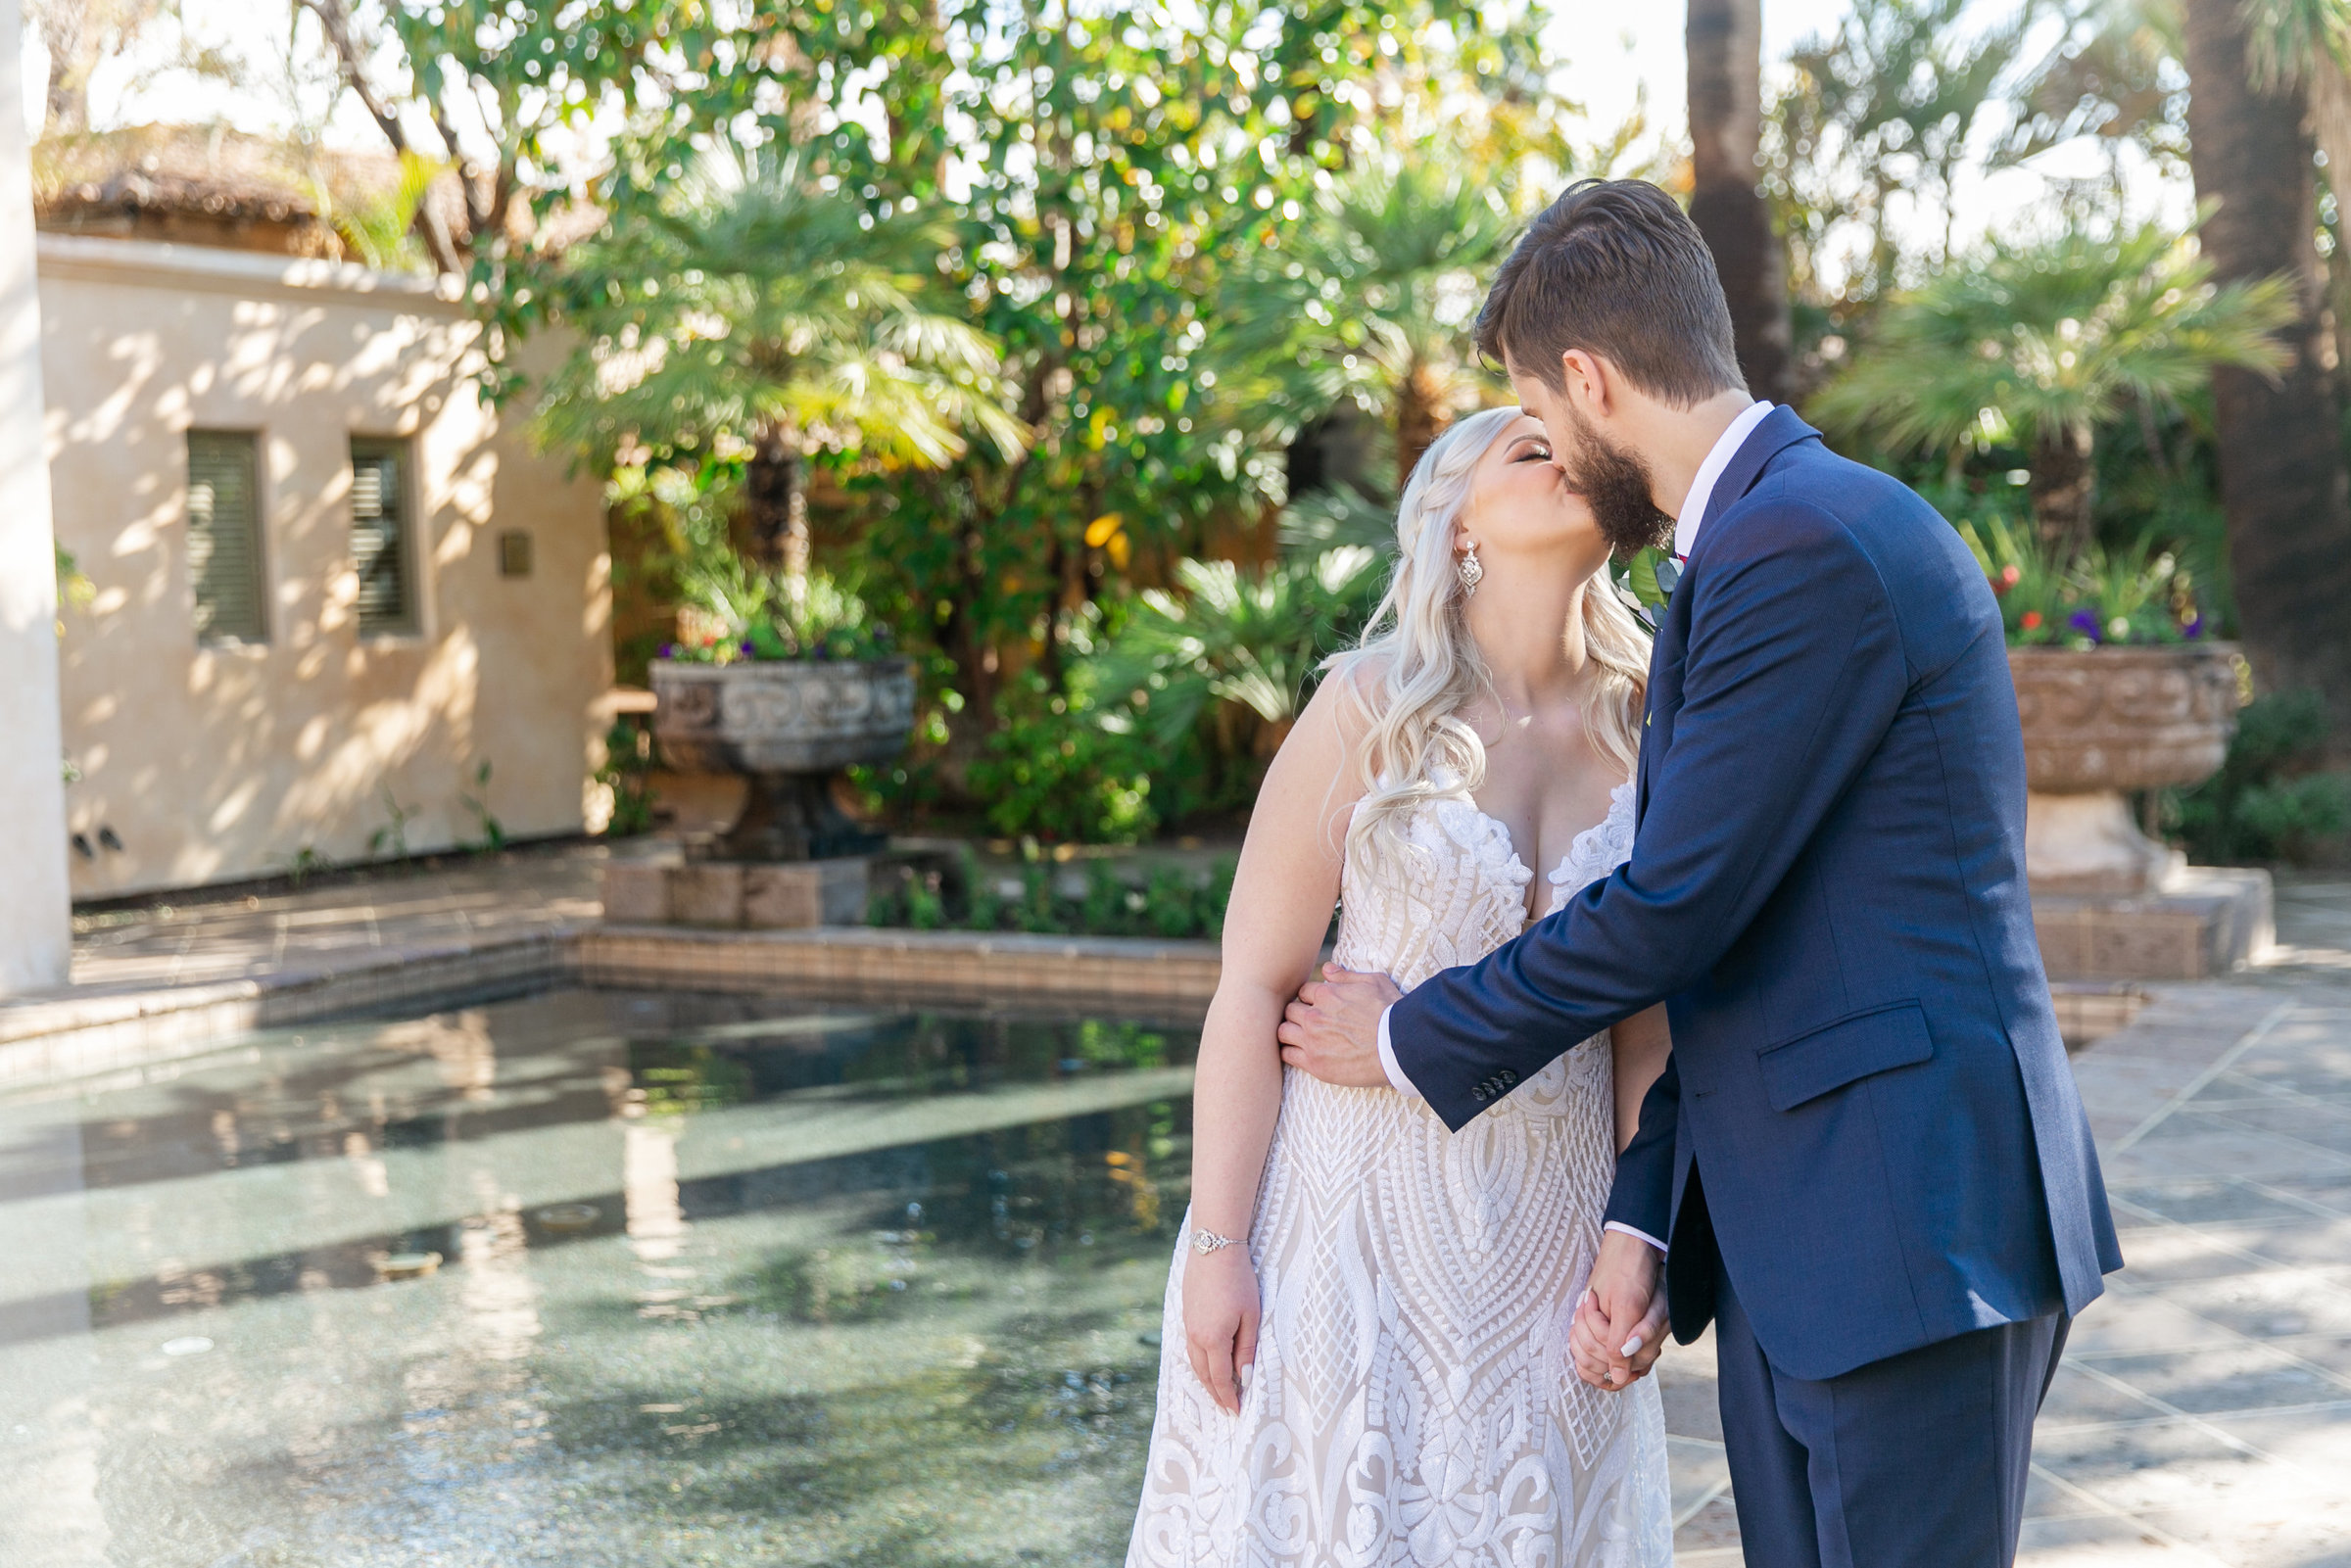 Karlie Colleen Photography - The Royal Palms Wedding - Some Like It Classic - Alex & Sam-142